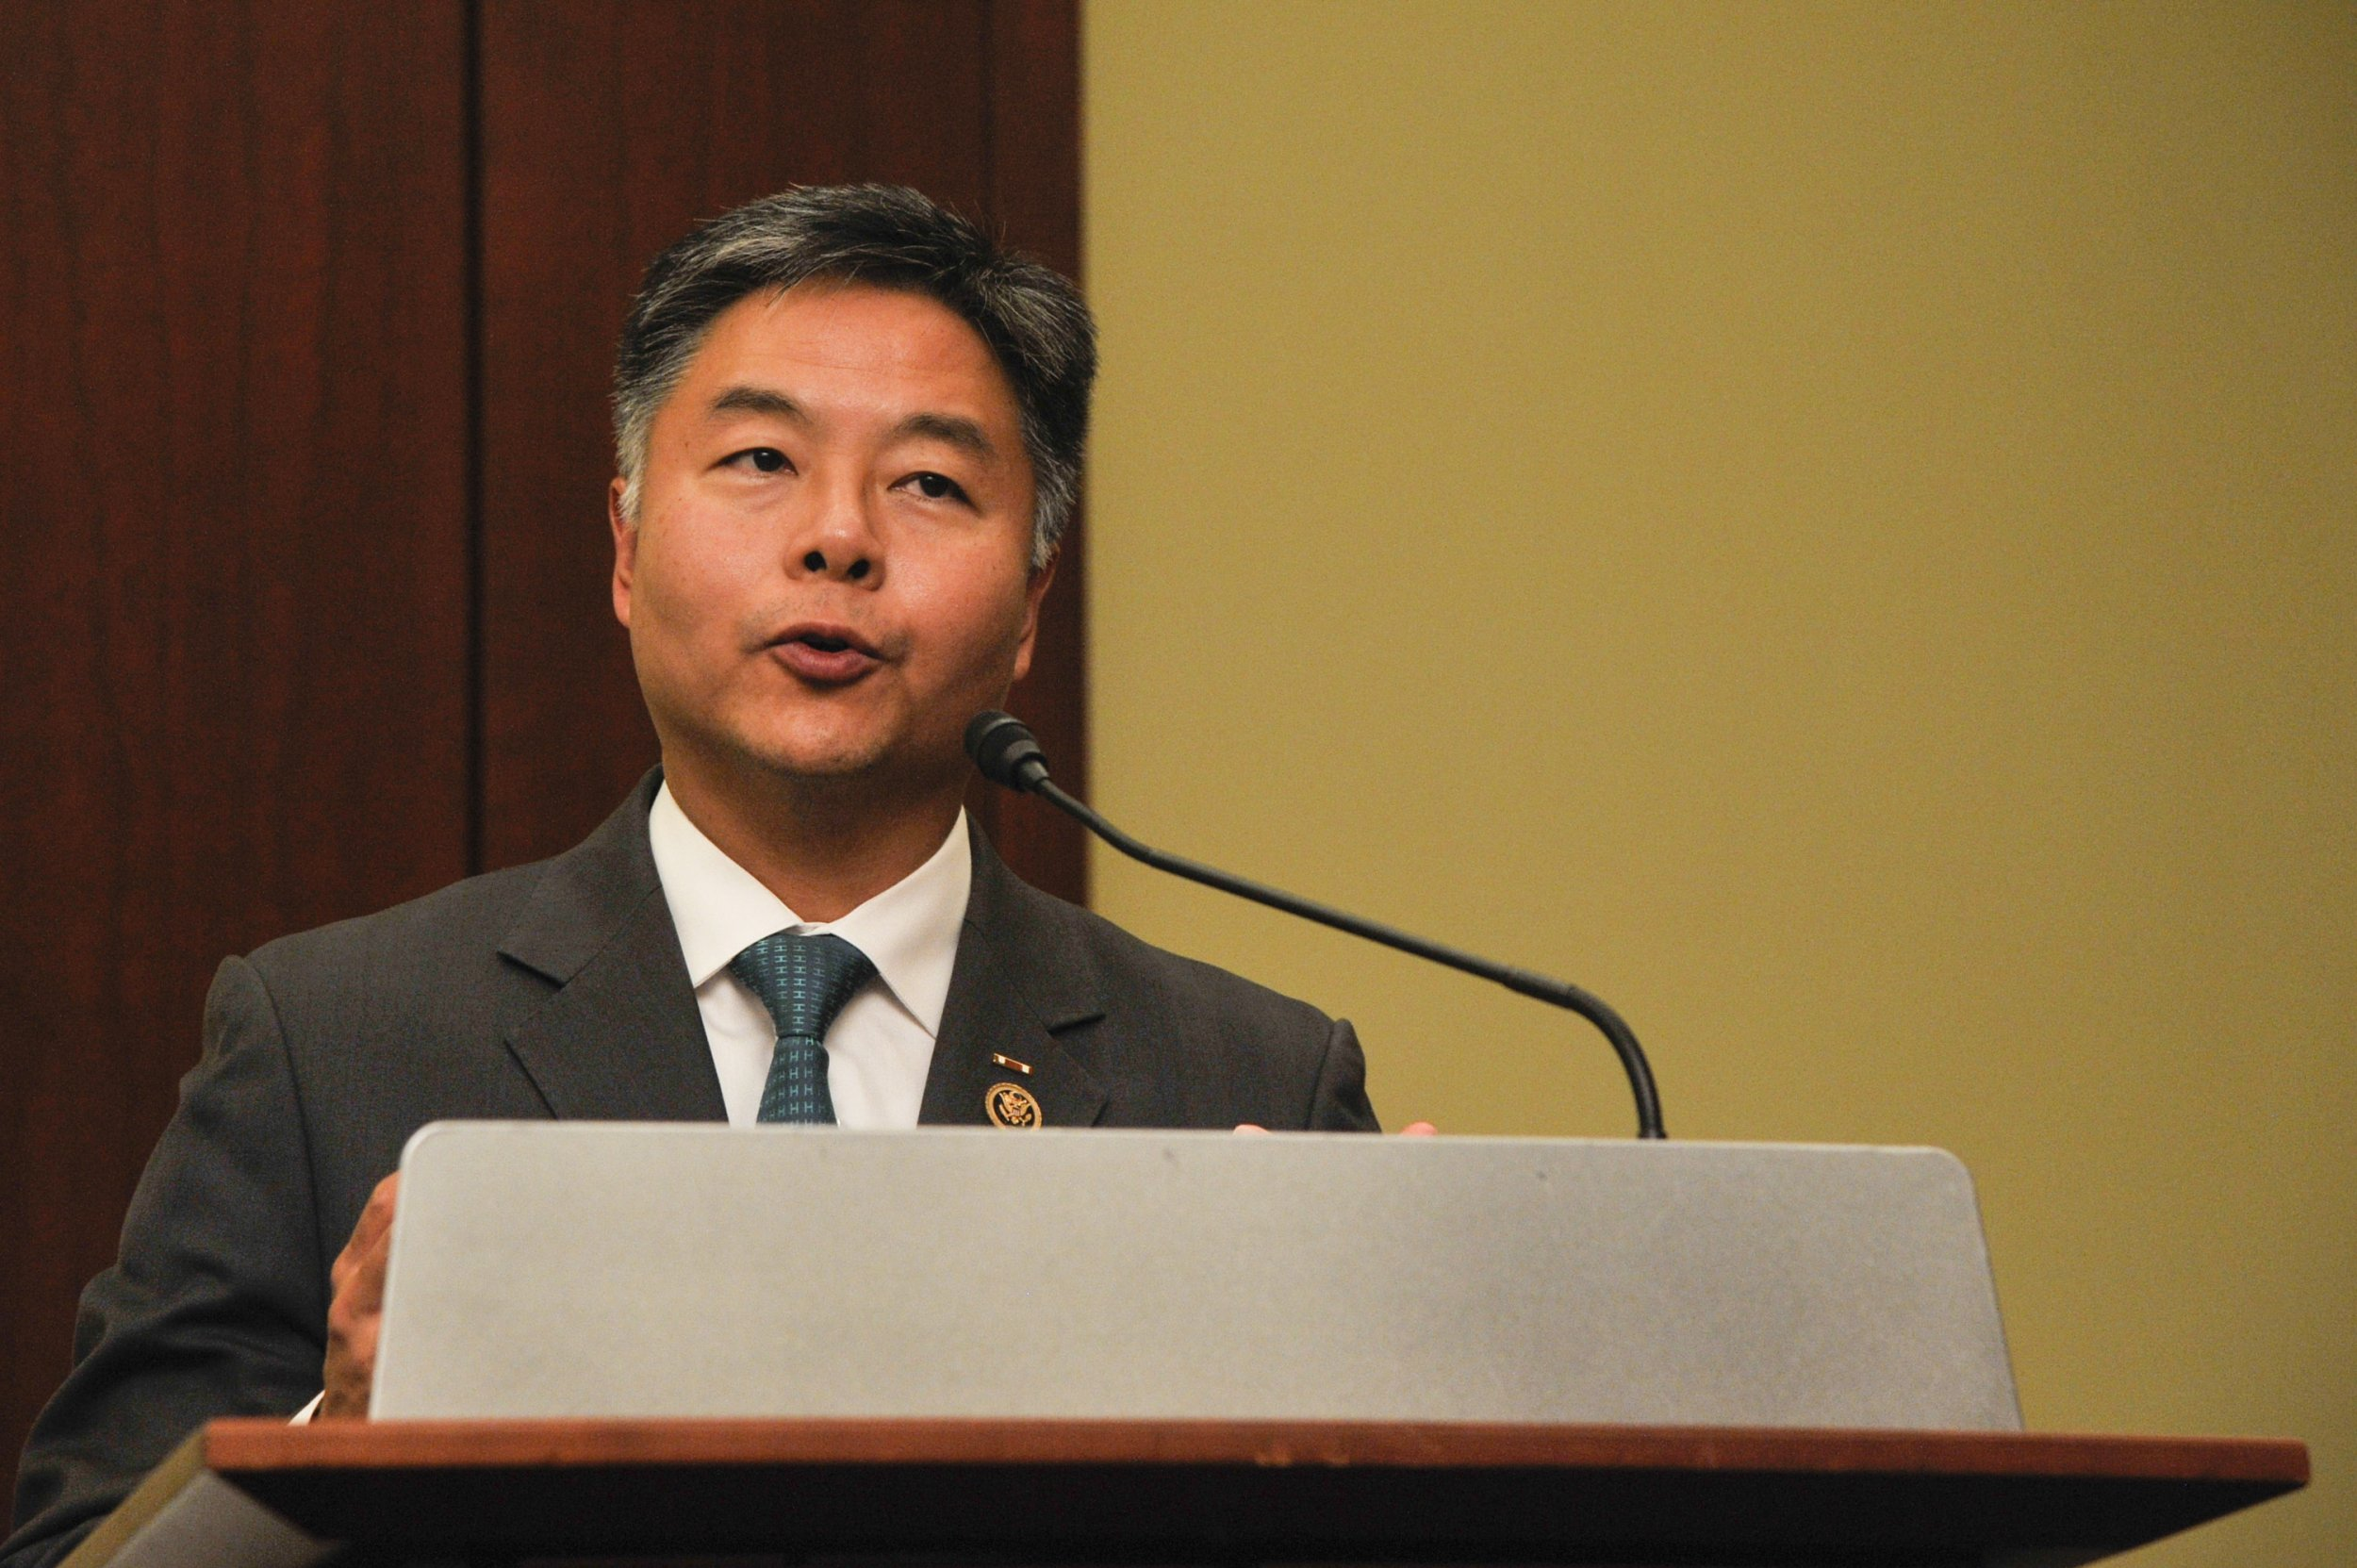 05_10_North_Korea_War_Ted_Lieu